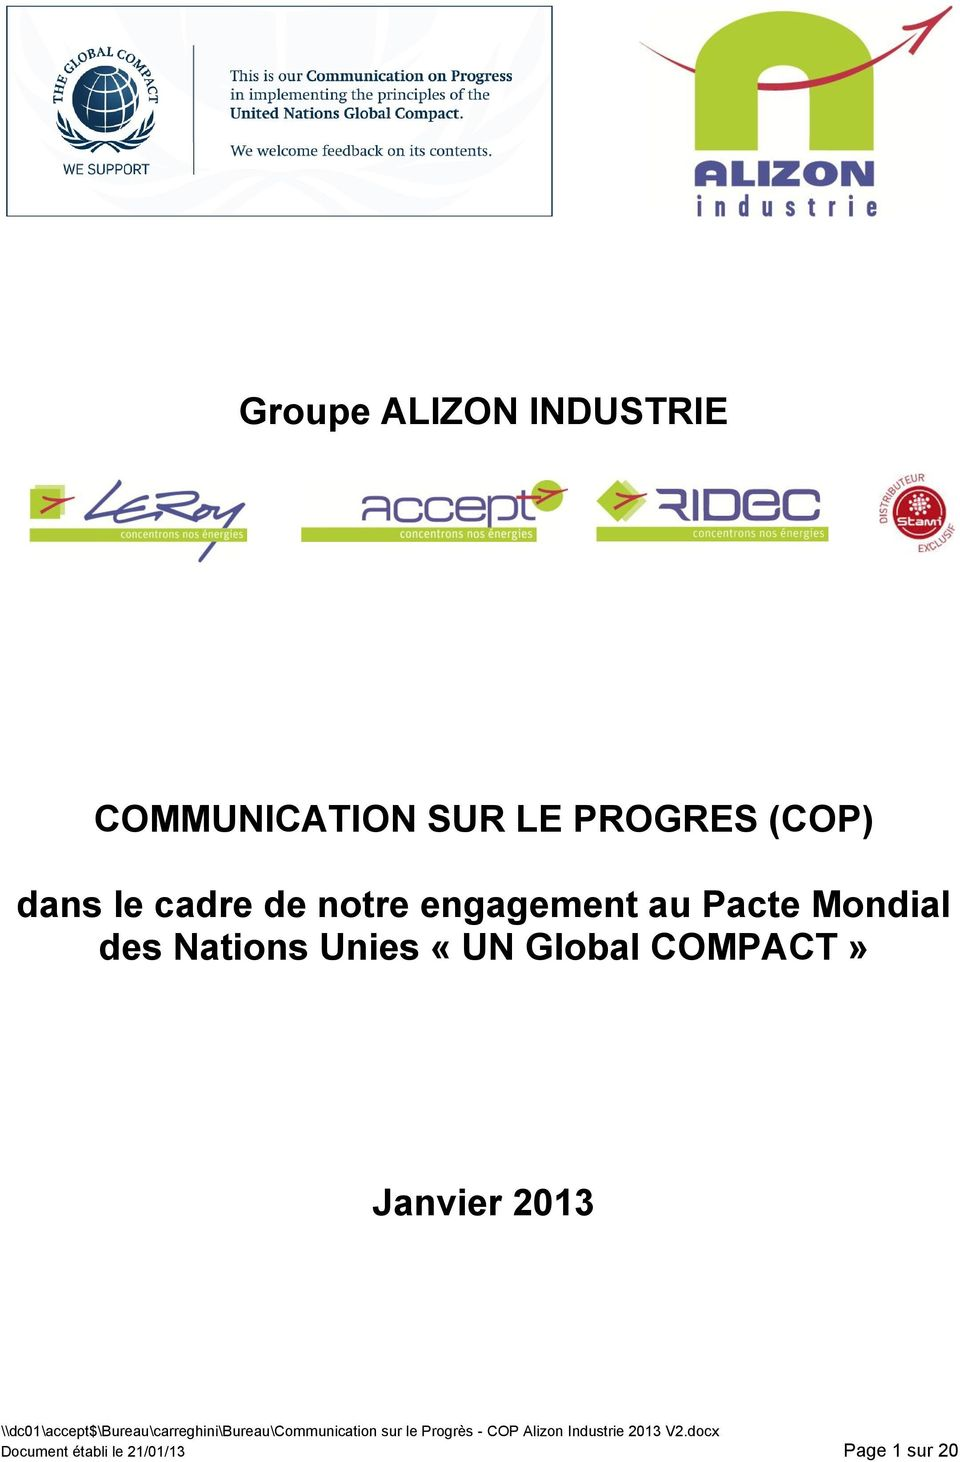 Pacte Mondial des Nations Unies «UN Global